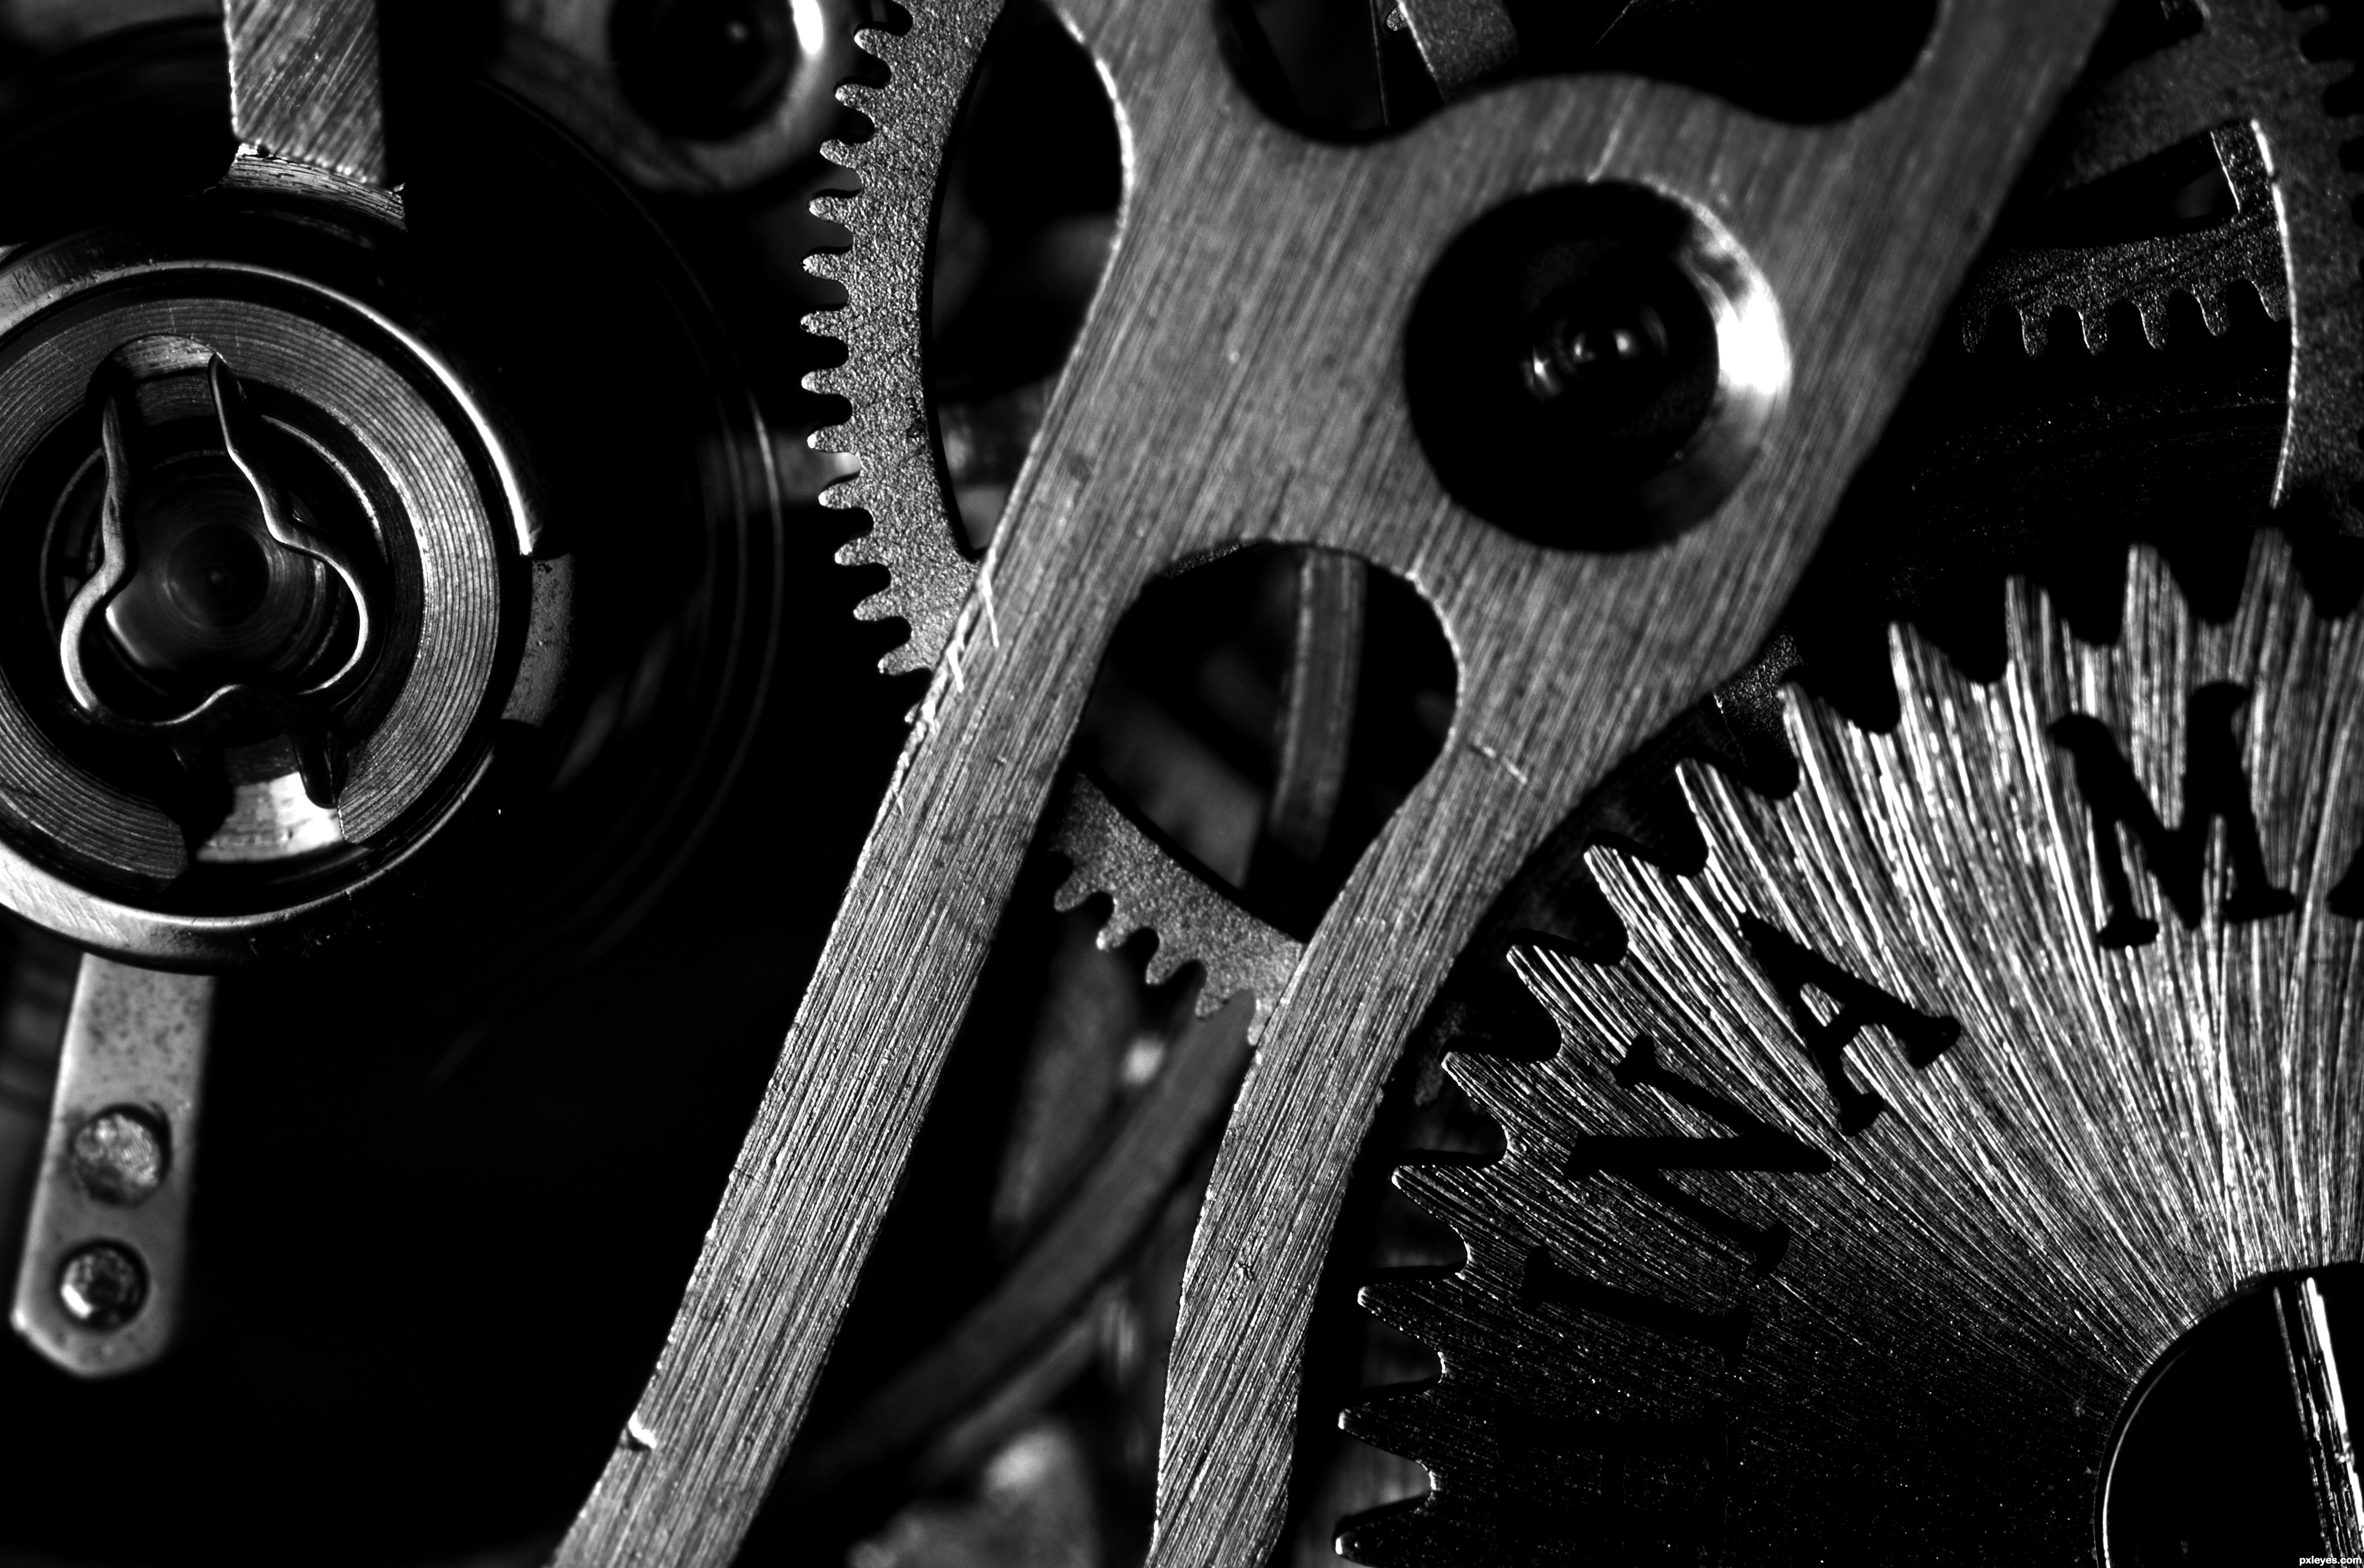 Clock Works Picture By Unclejimmy For Machine Macros 2